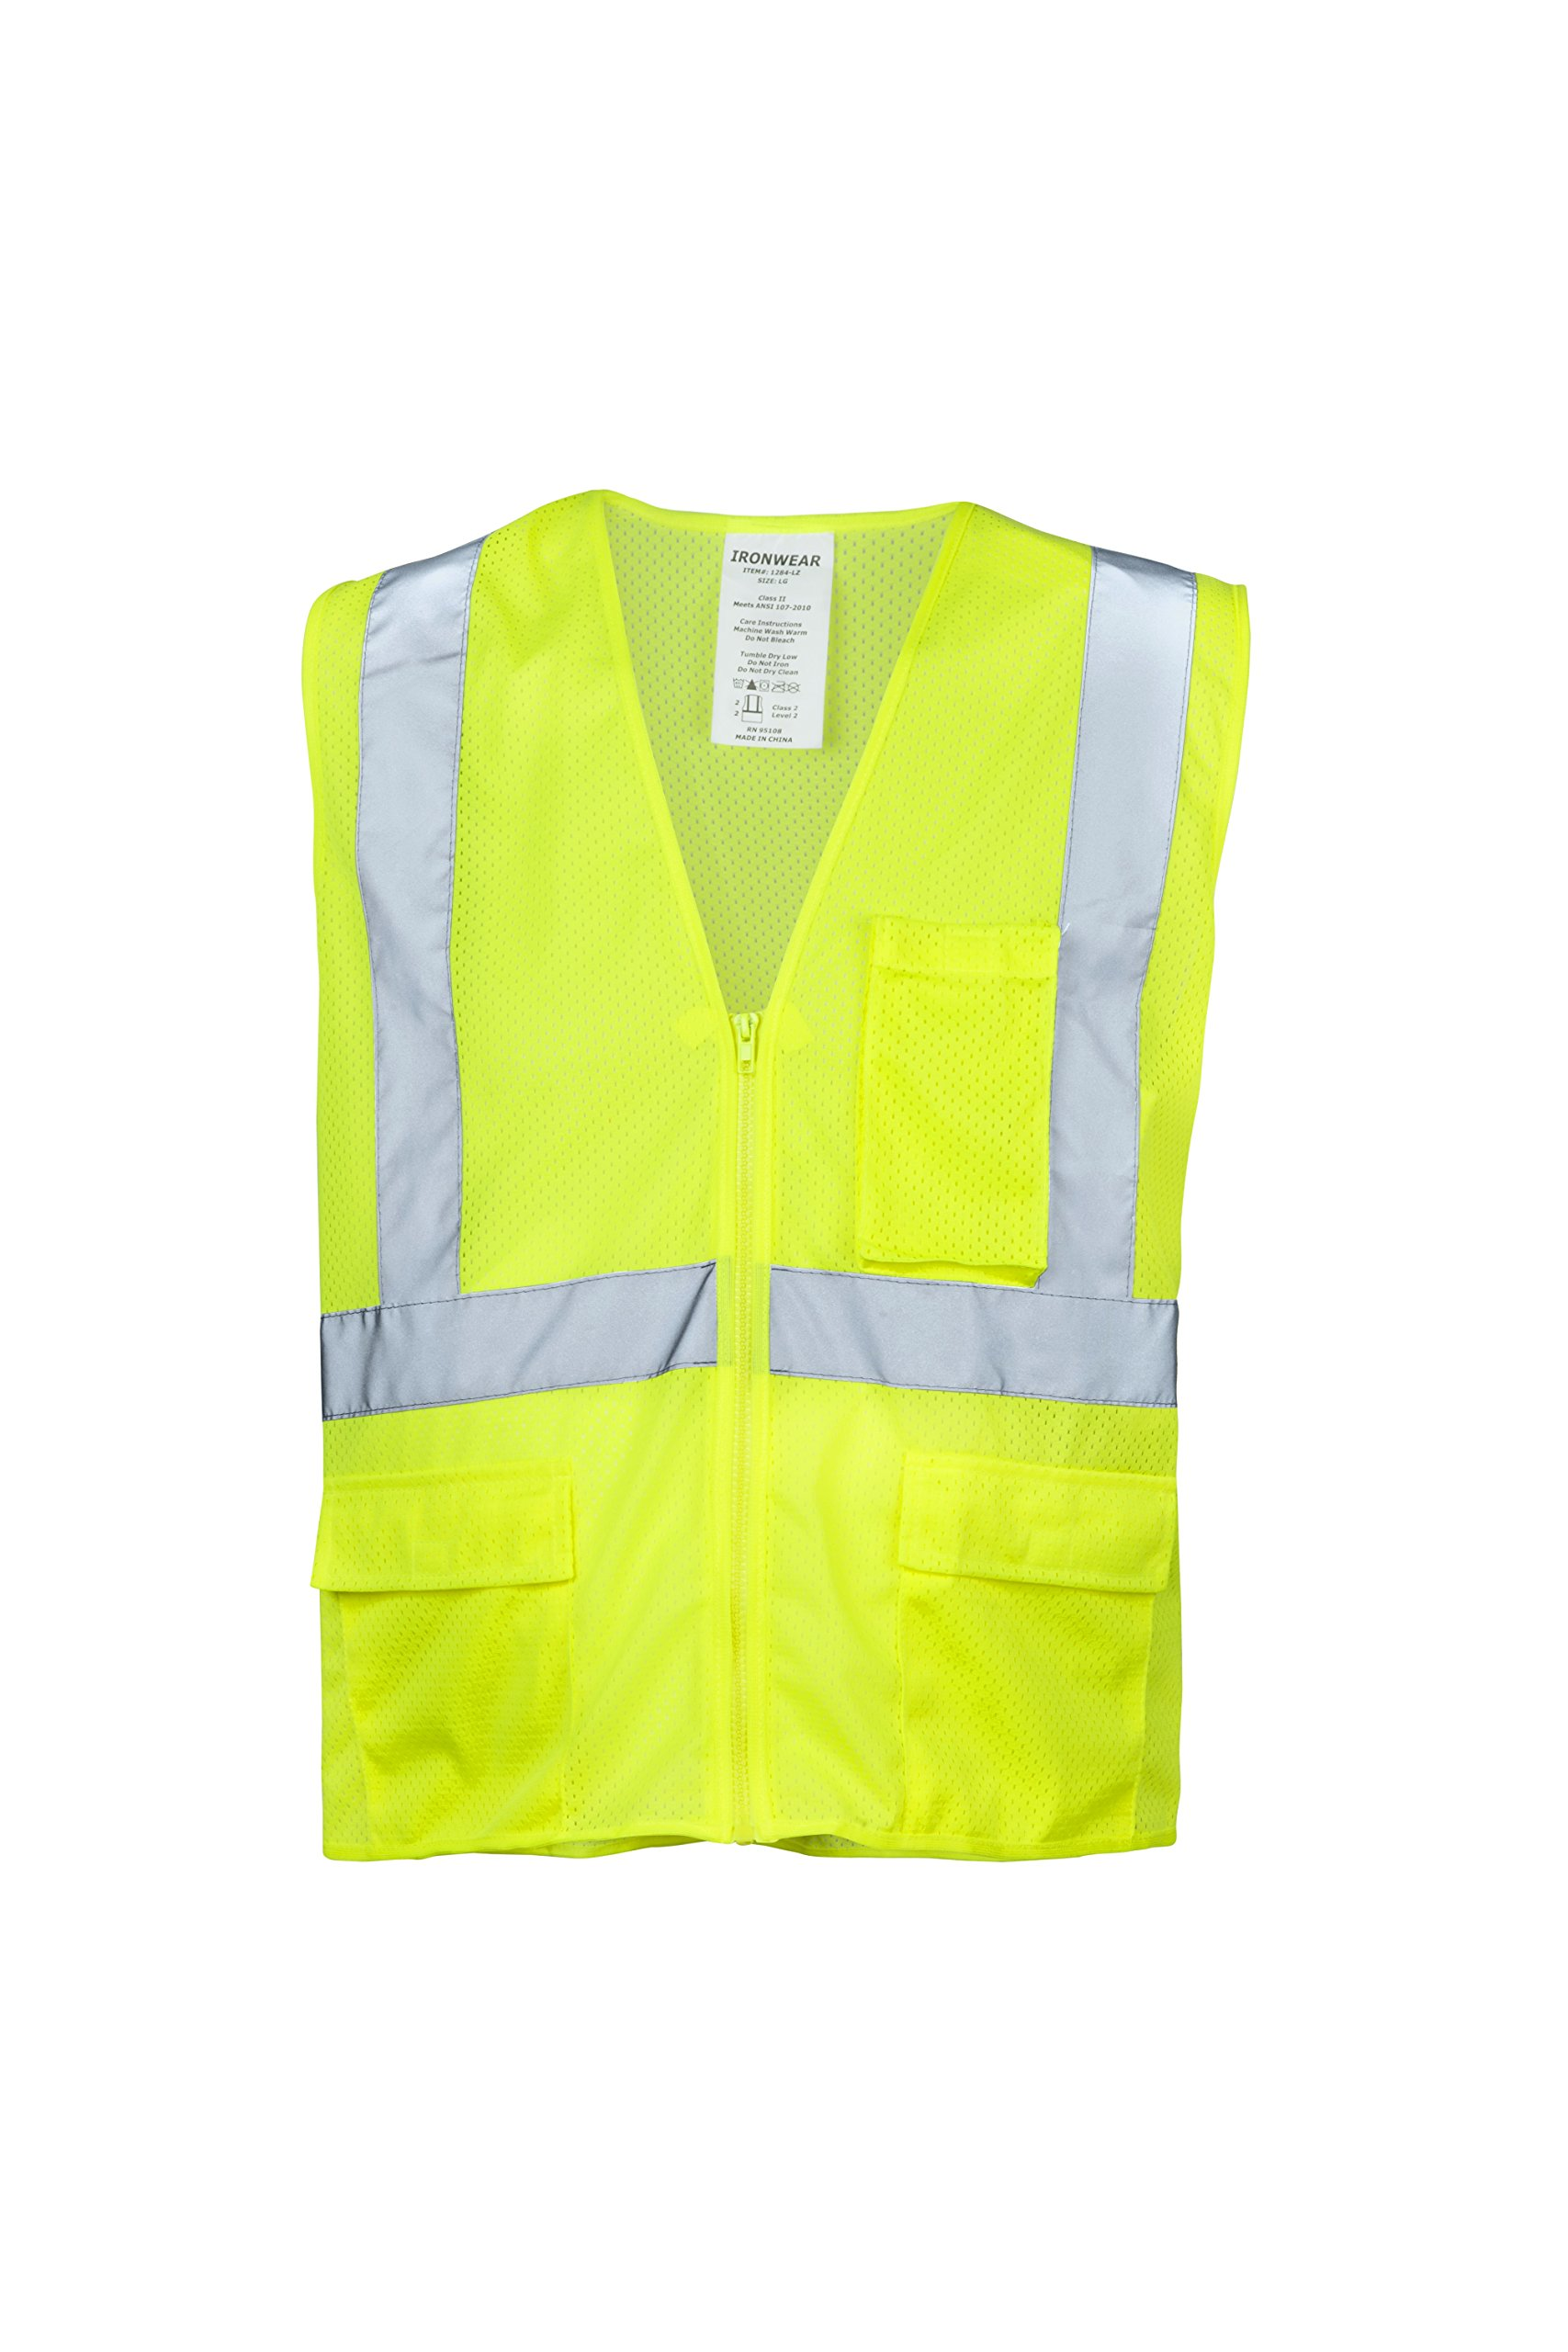 """Ironwear 1284-LZ-2-M ANSI Class 2 Polyester Mesh SAFETY Vest with Zipper & 2"""" Silver Reflective Tape, Lime, Medium"""